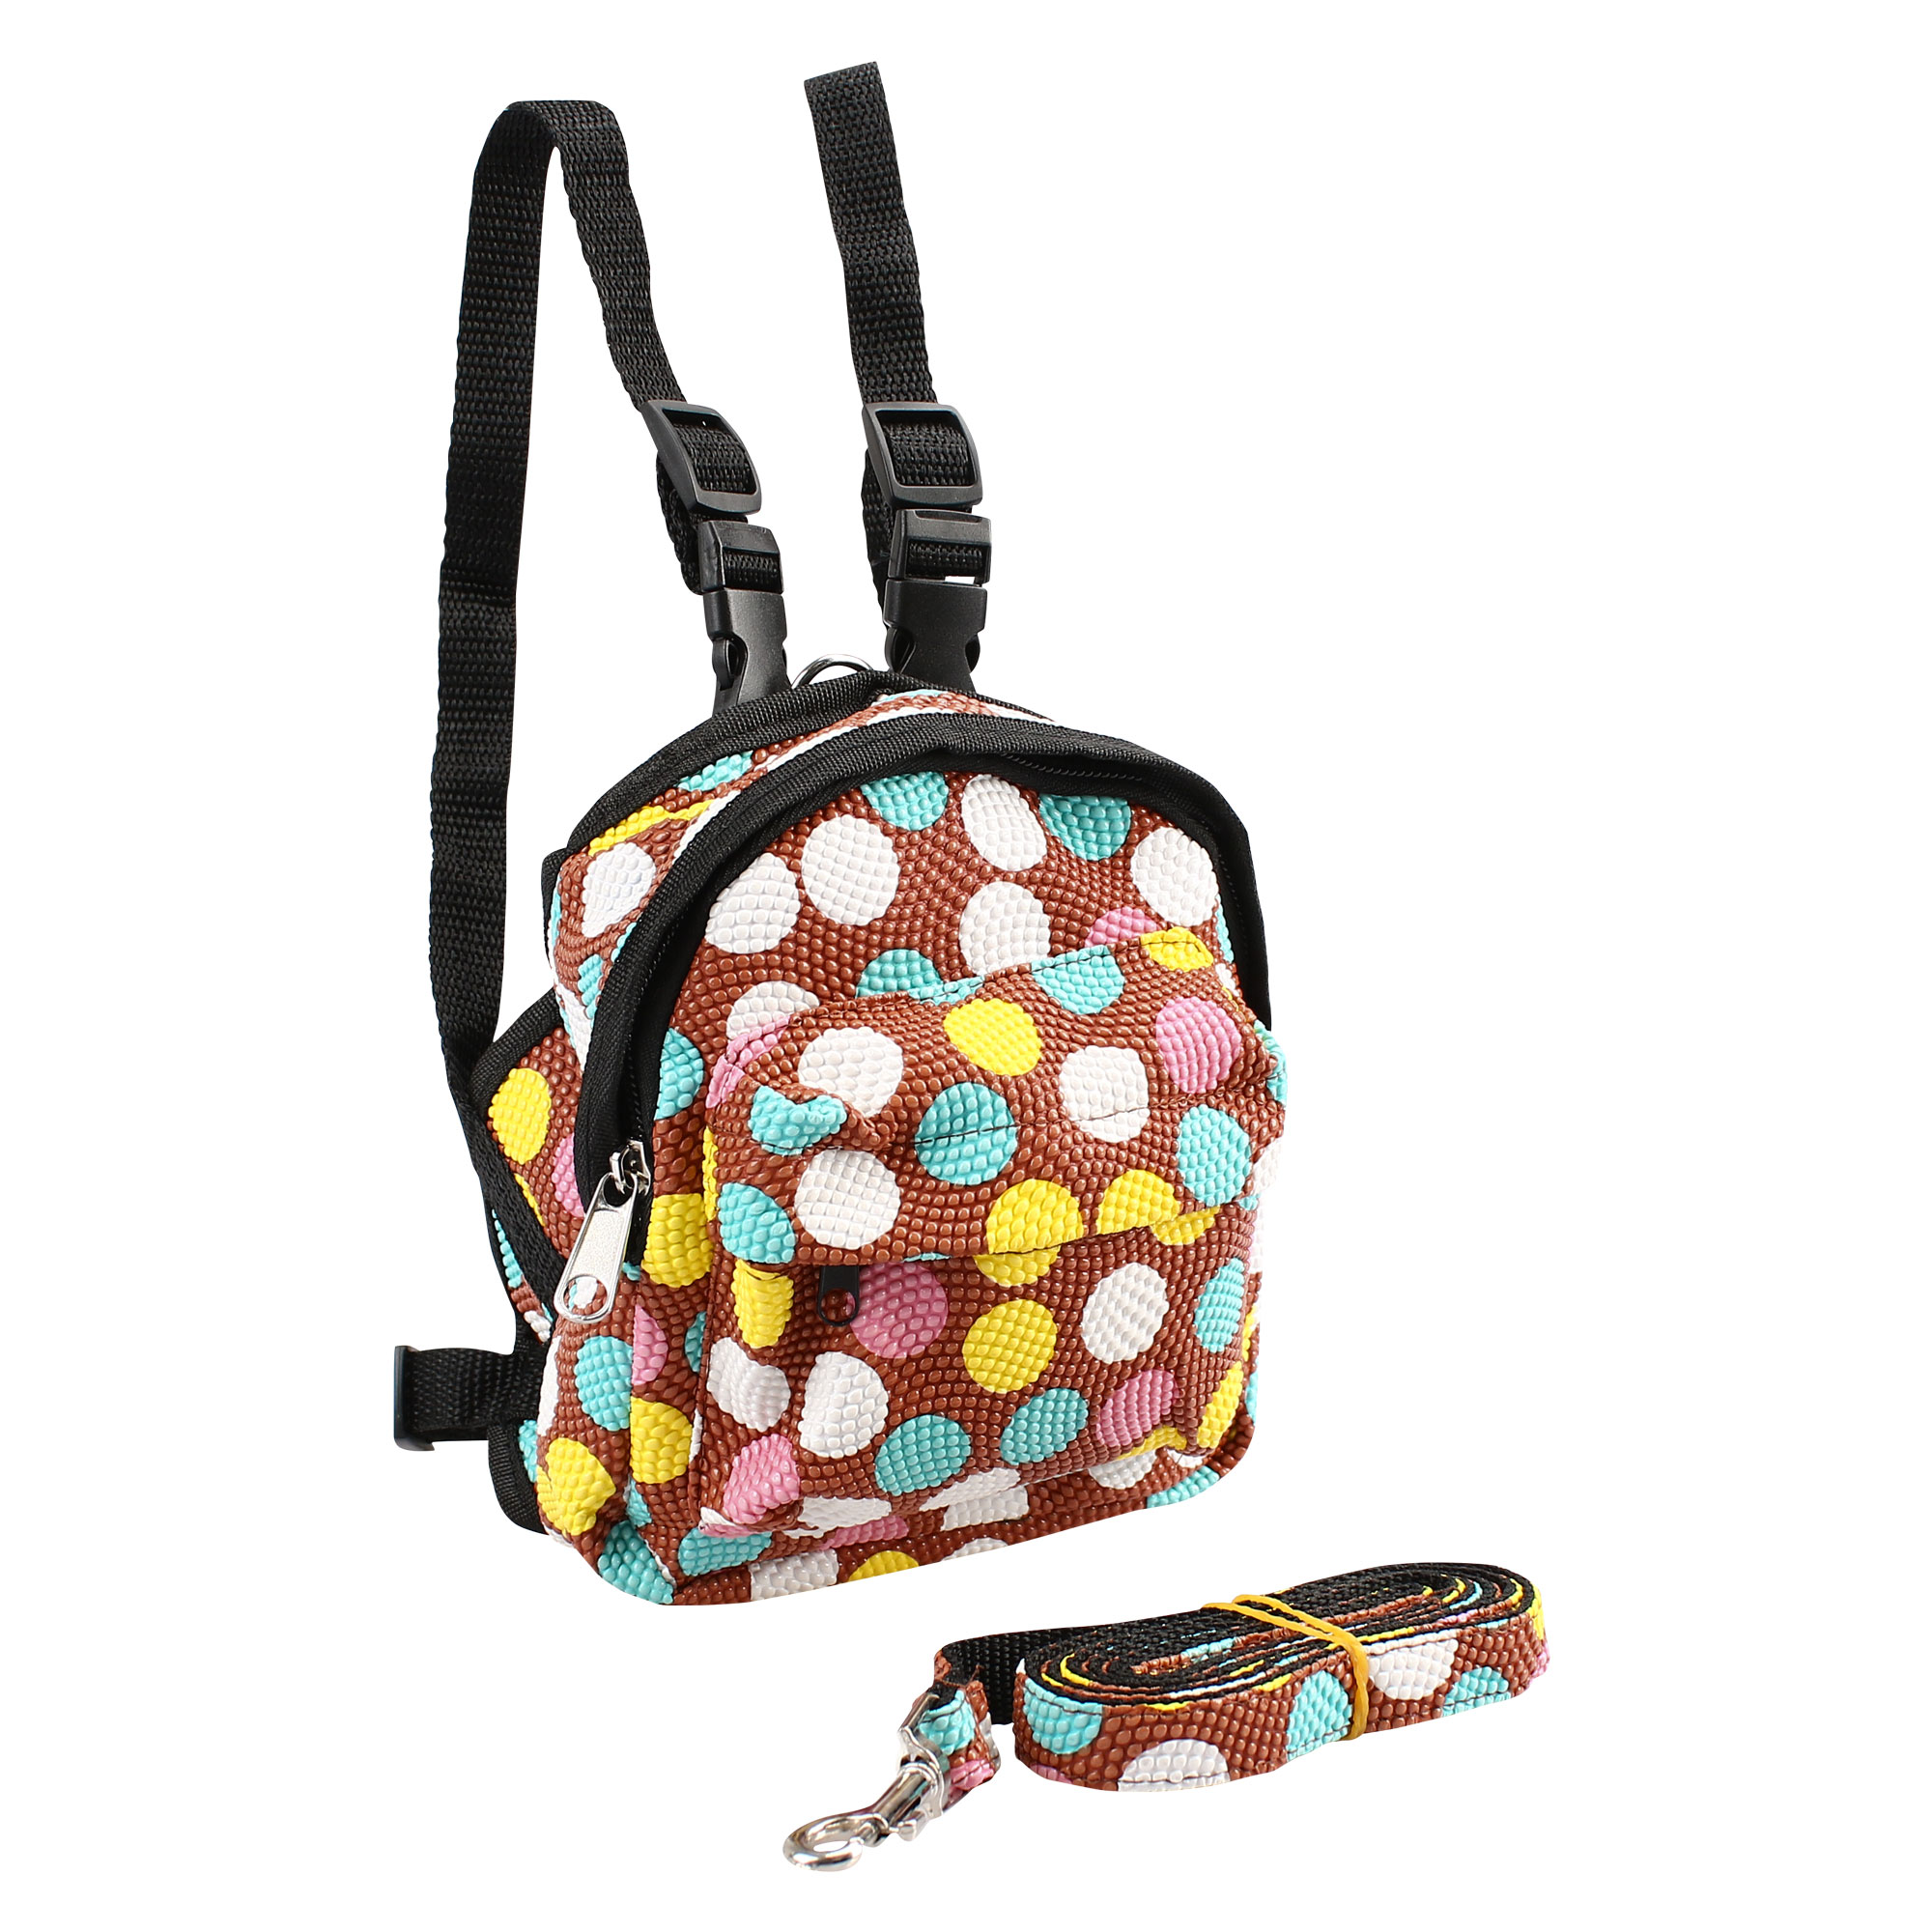 Dog Pet Backpack Dot Pattern Carrier Bag Holder with Leash Rope for Outdoor Travel Hiking Camping Brown M